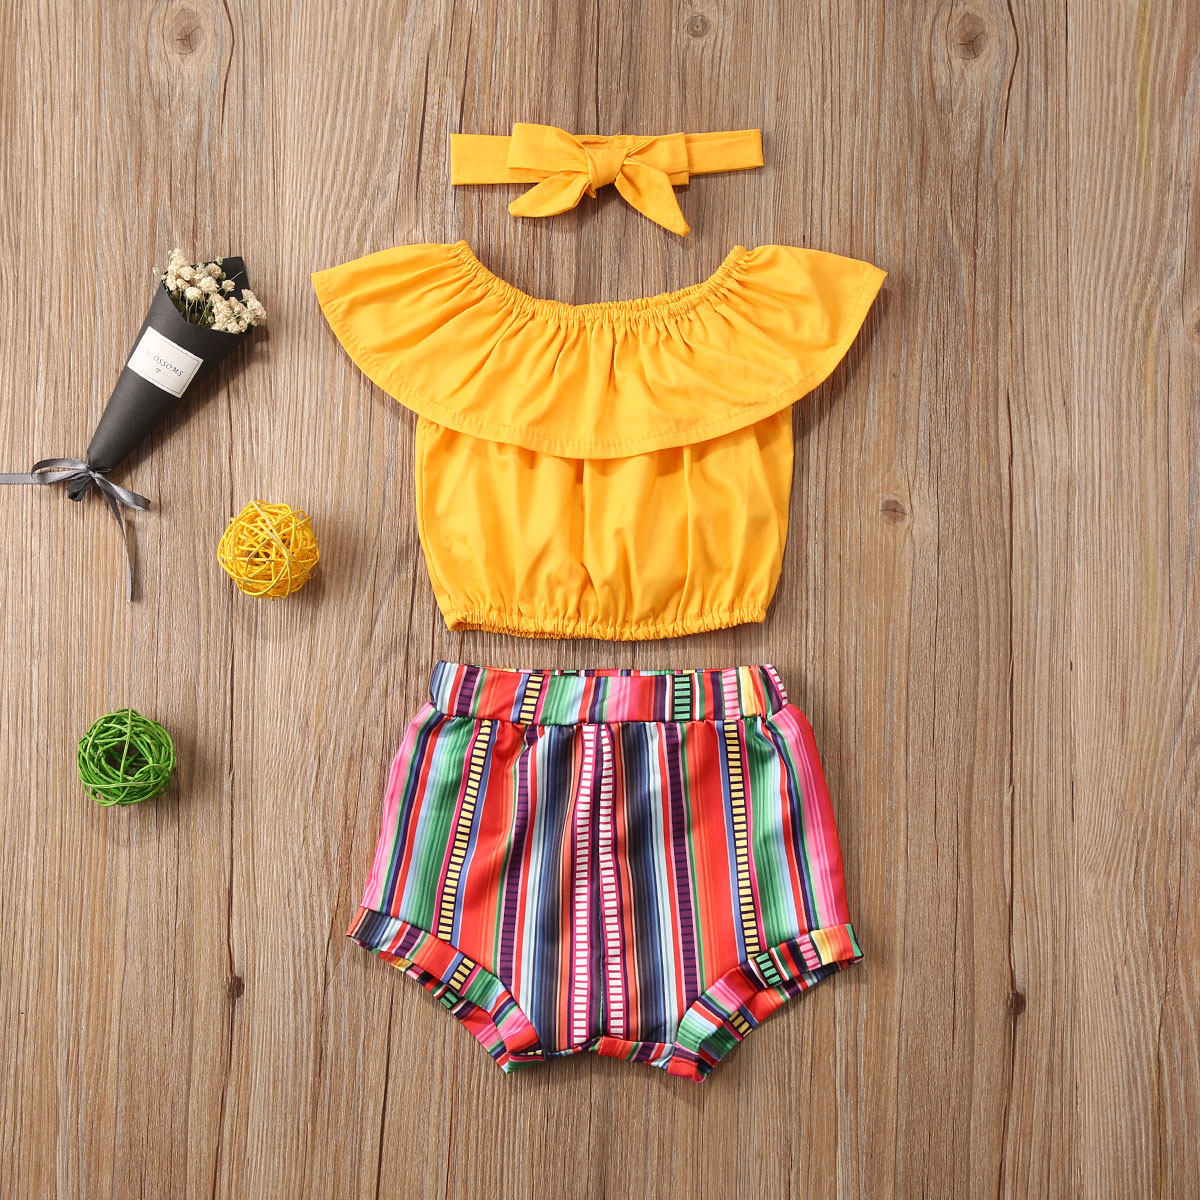 Pudcoco Toddler Baby Girl Clothes Soldi Color Off Shoudler Ruffle Tops Striped Short Pants Headband 3Pcs Outfits Sunsuit Set